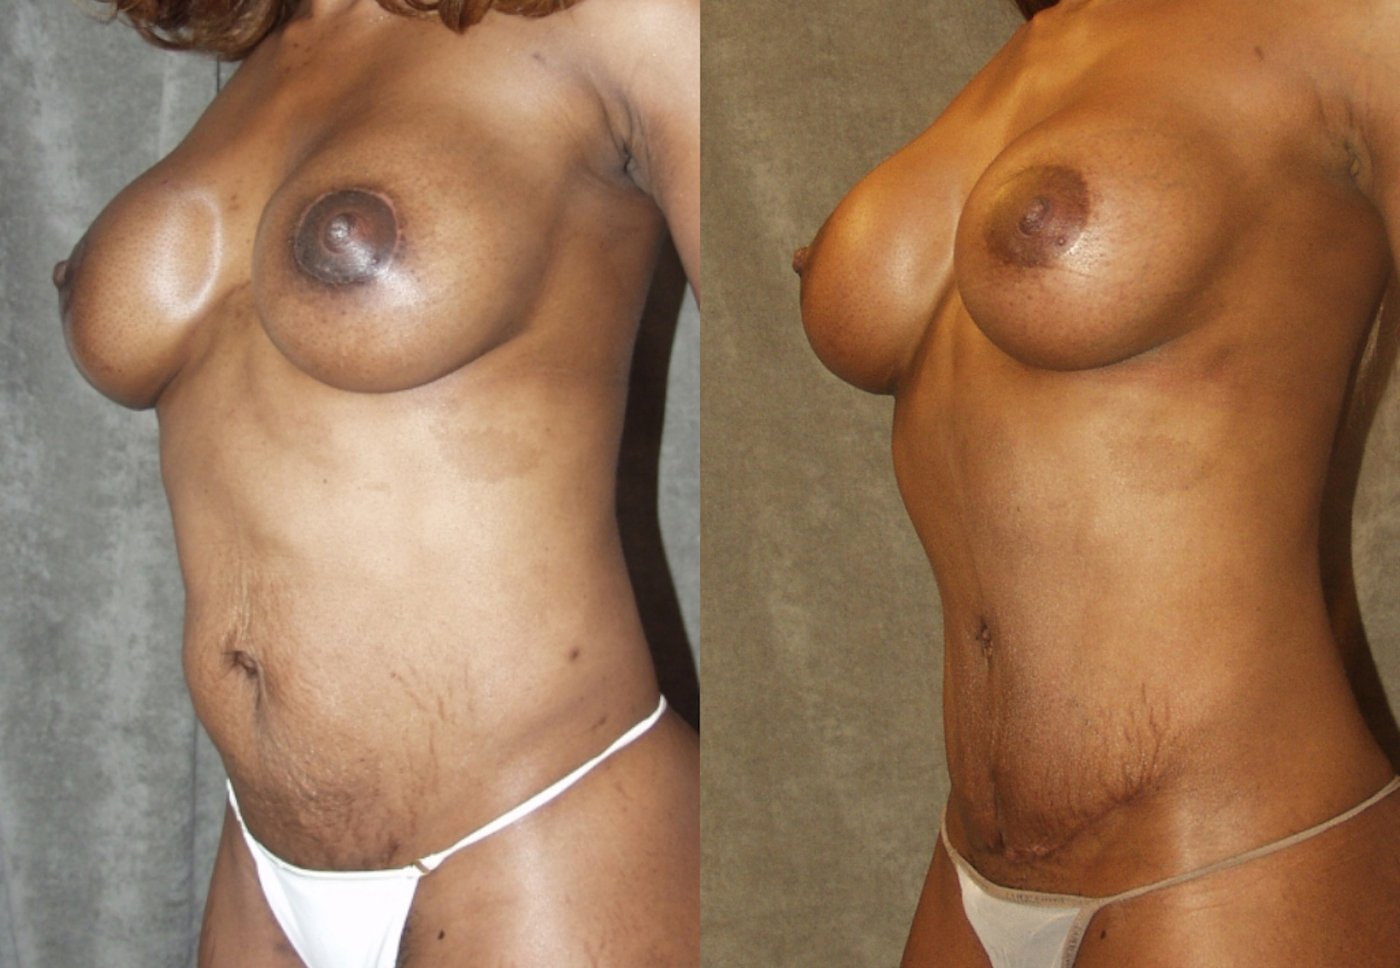 Mommy Makeover,  43-years-old, 11  years after breast SAMBA _ 5 years after abdominoplasty, oblique view.